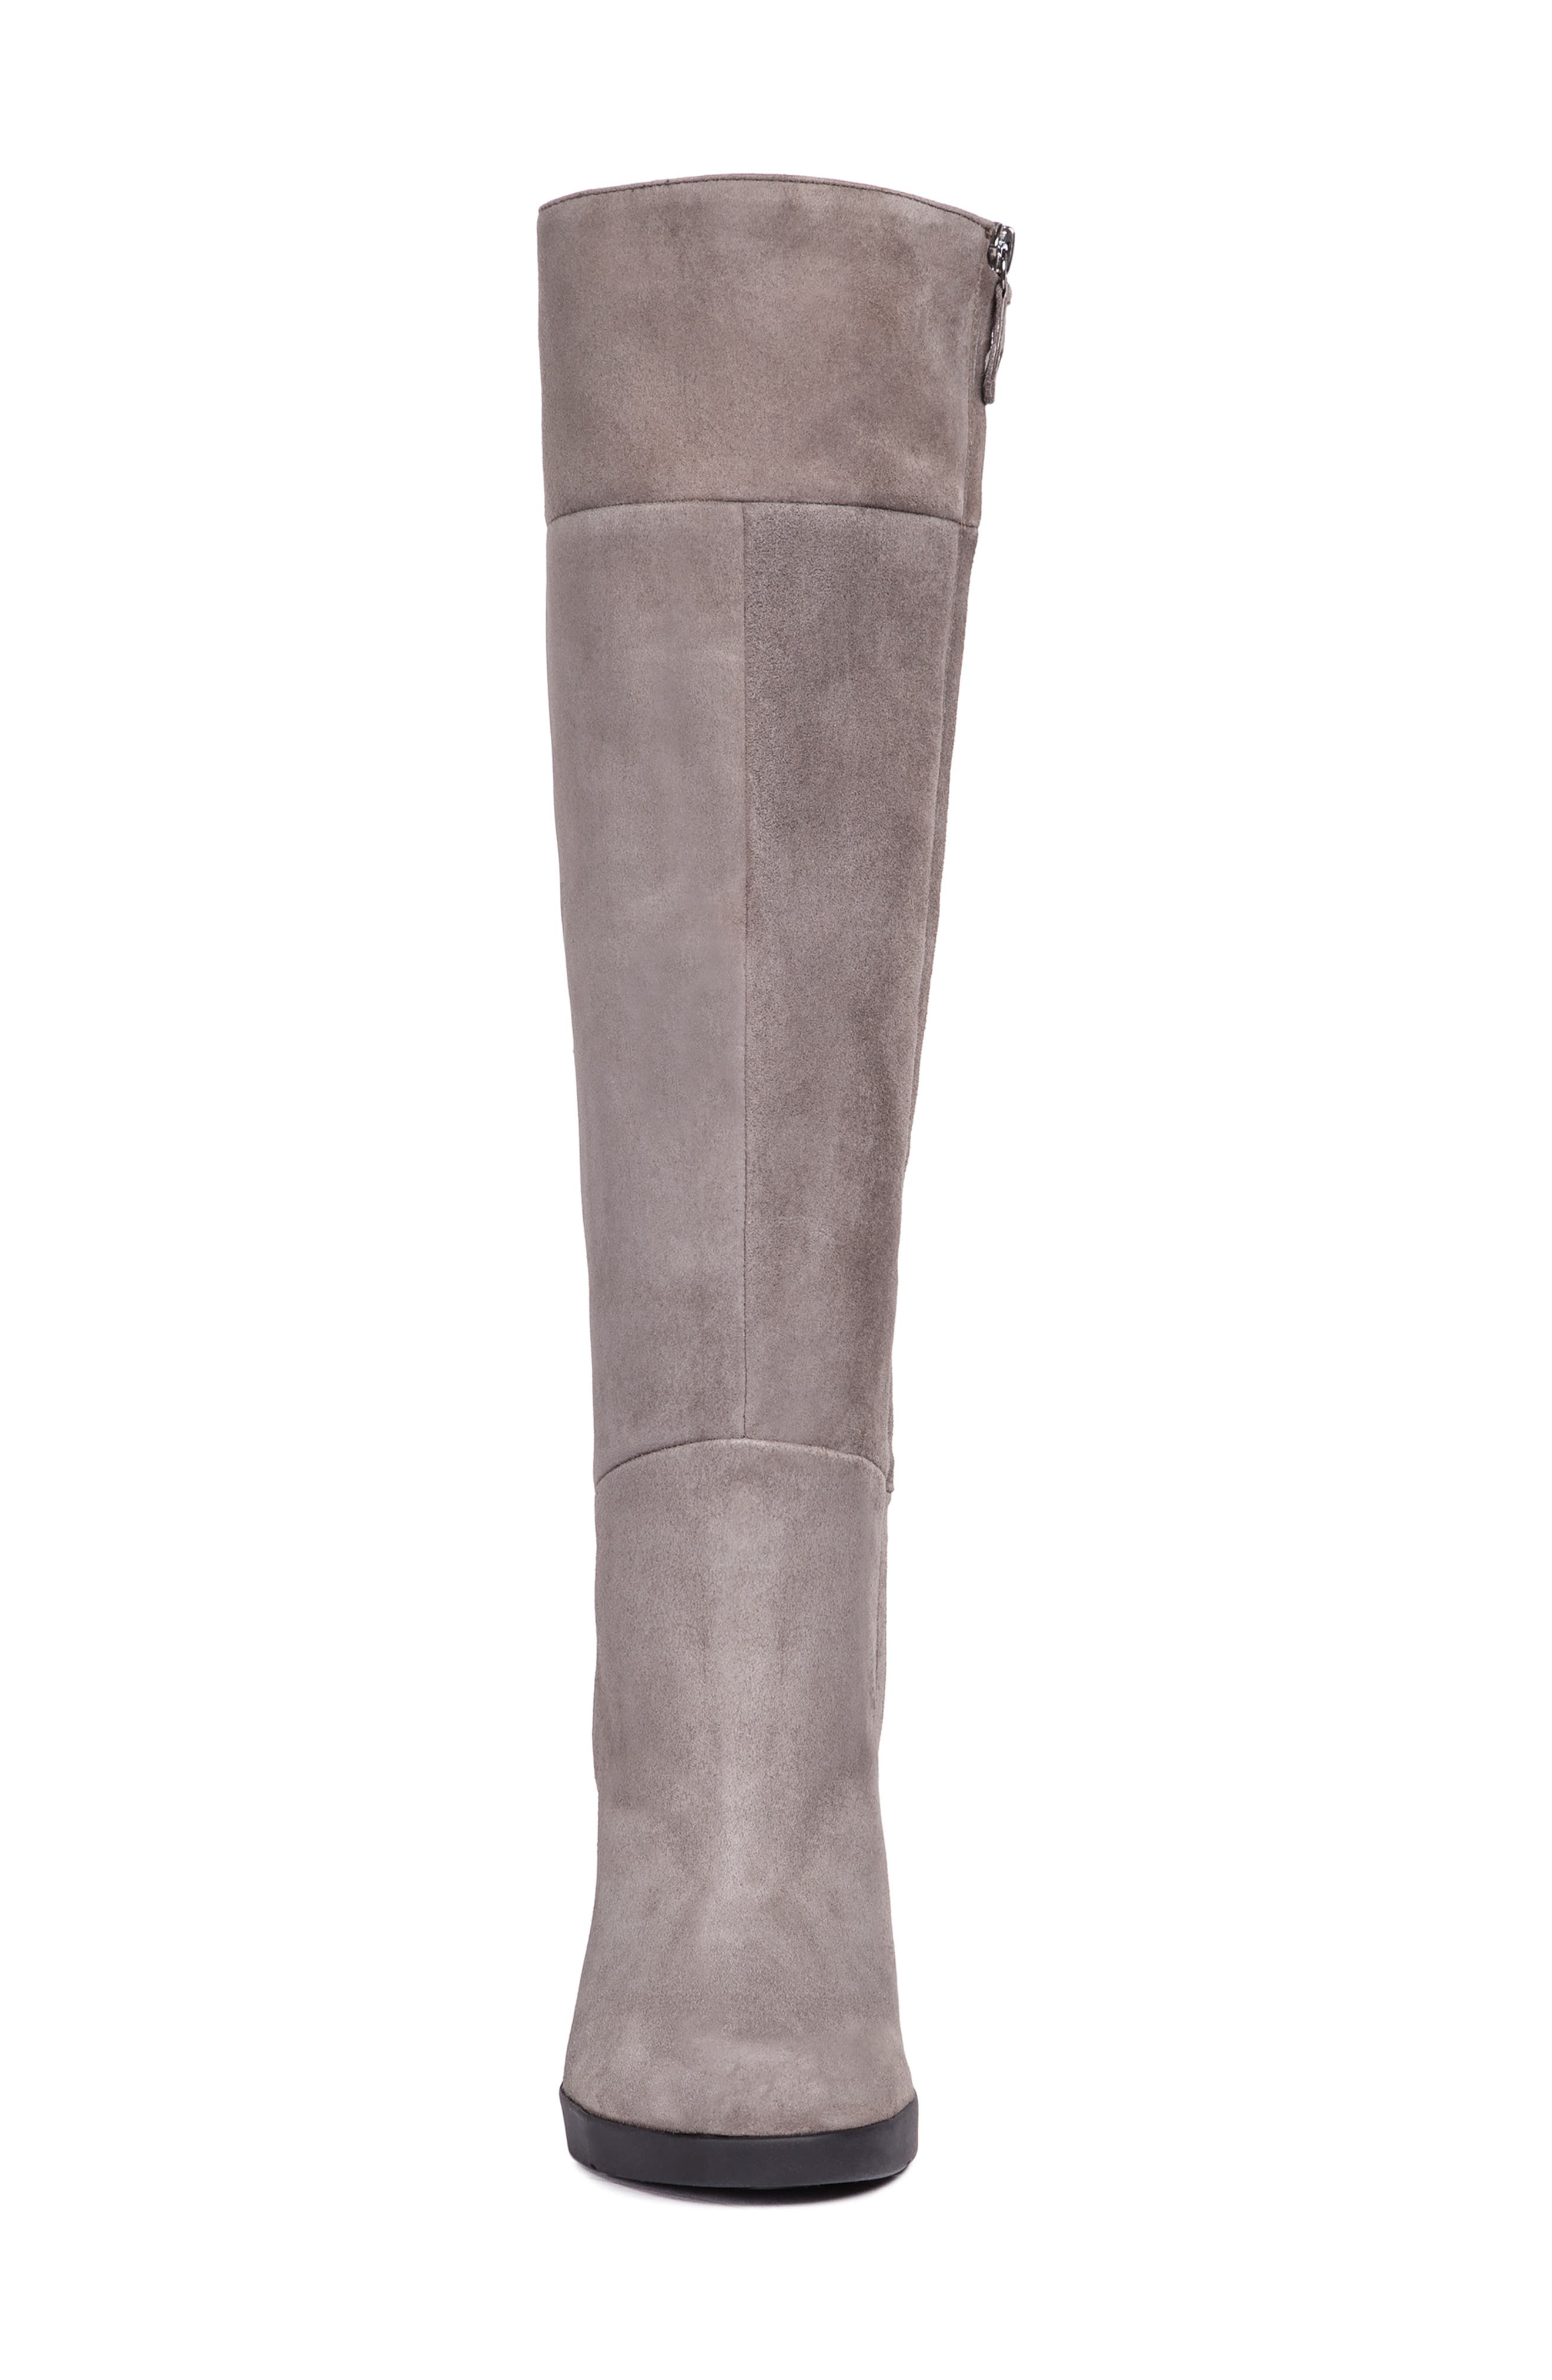 GEOX,                             Annya Knee High Boot,                             Alternate thumbnail 4, color,                             CHESTNUT SUEDE